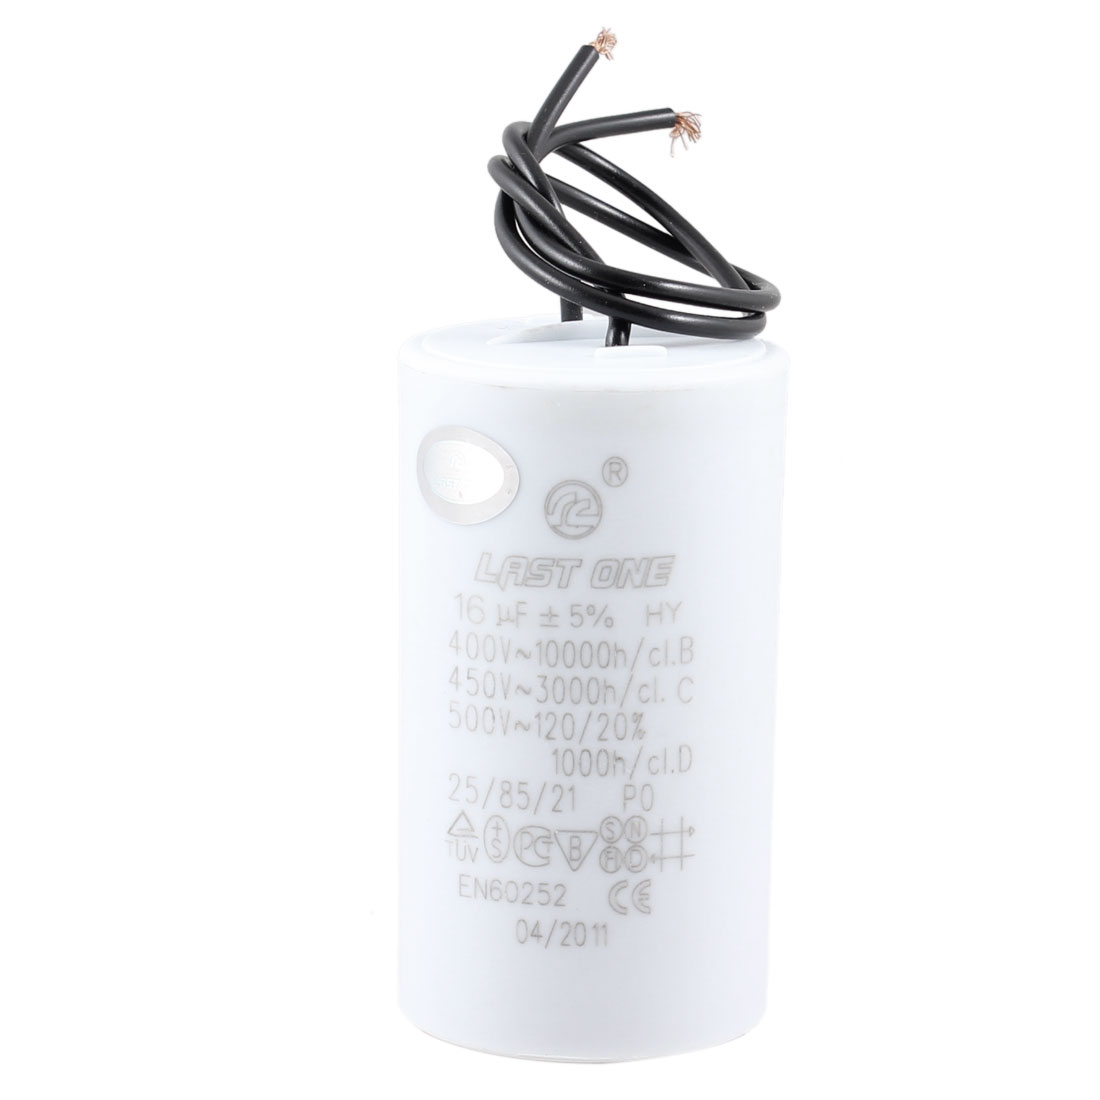 Washing Machine Washer 16uF AC 450V Motor Run Capacitor White